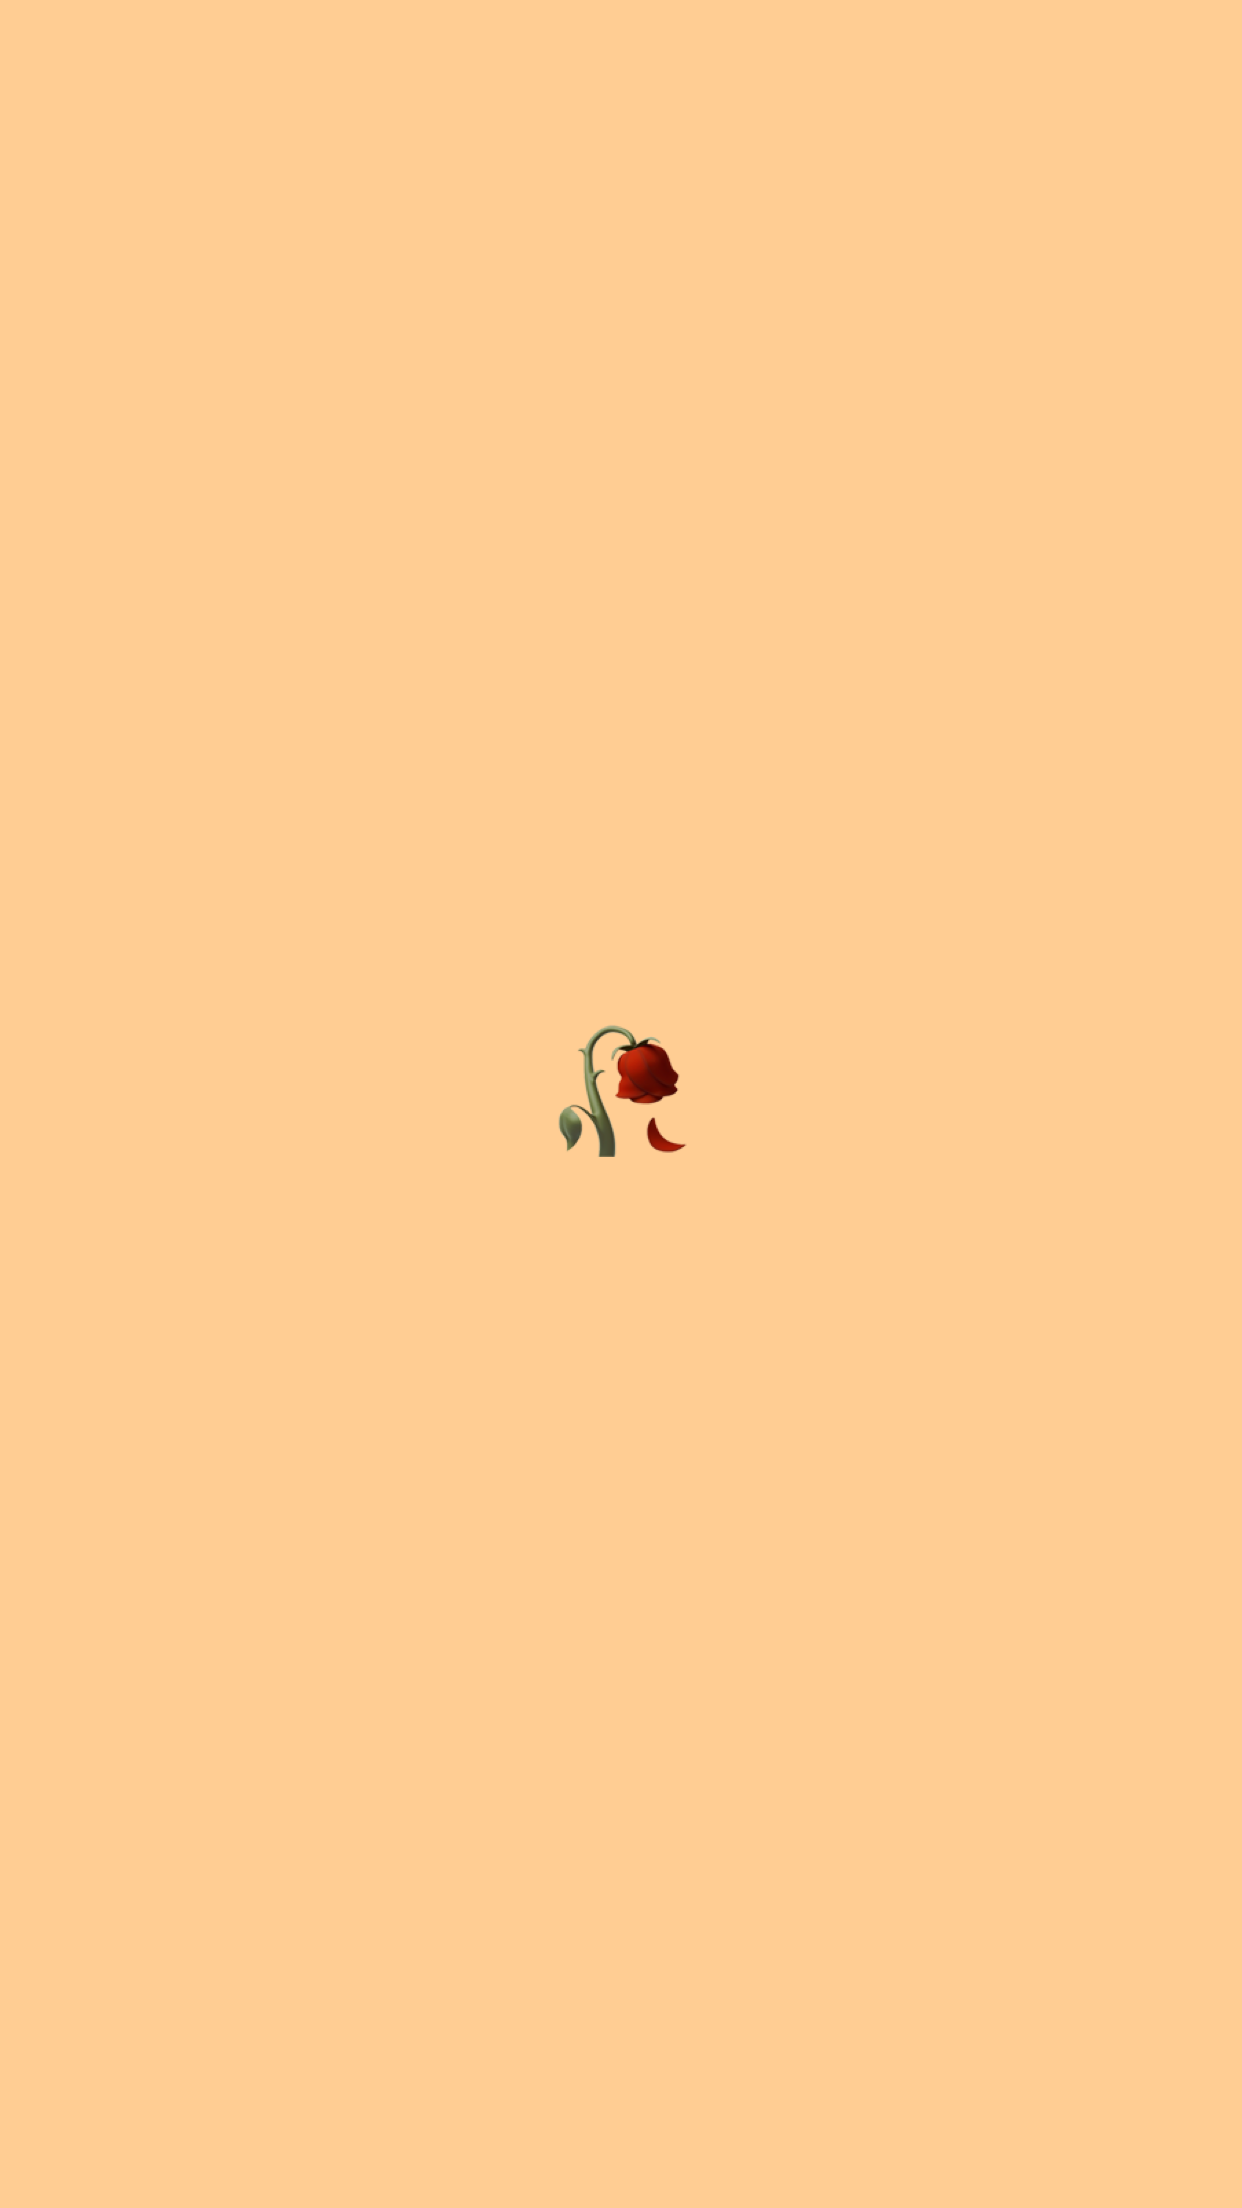 Rose Emoji Background Random Wallpaper In 2019 Emoji Wallpaper